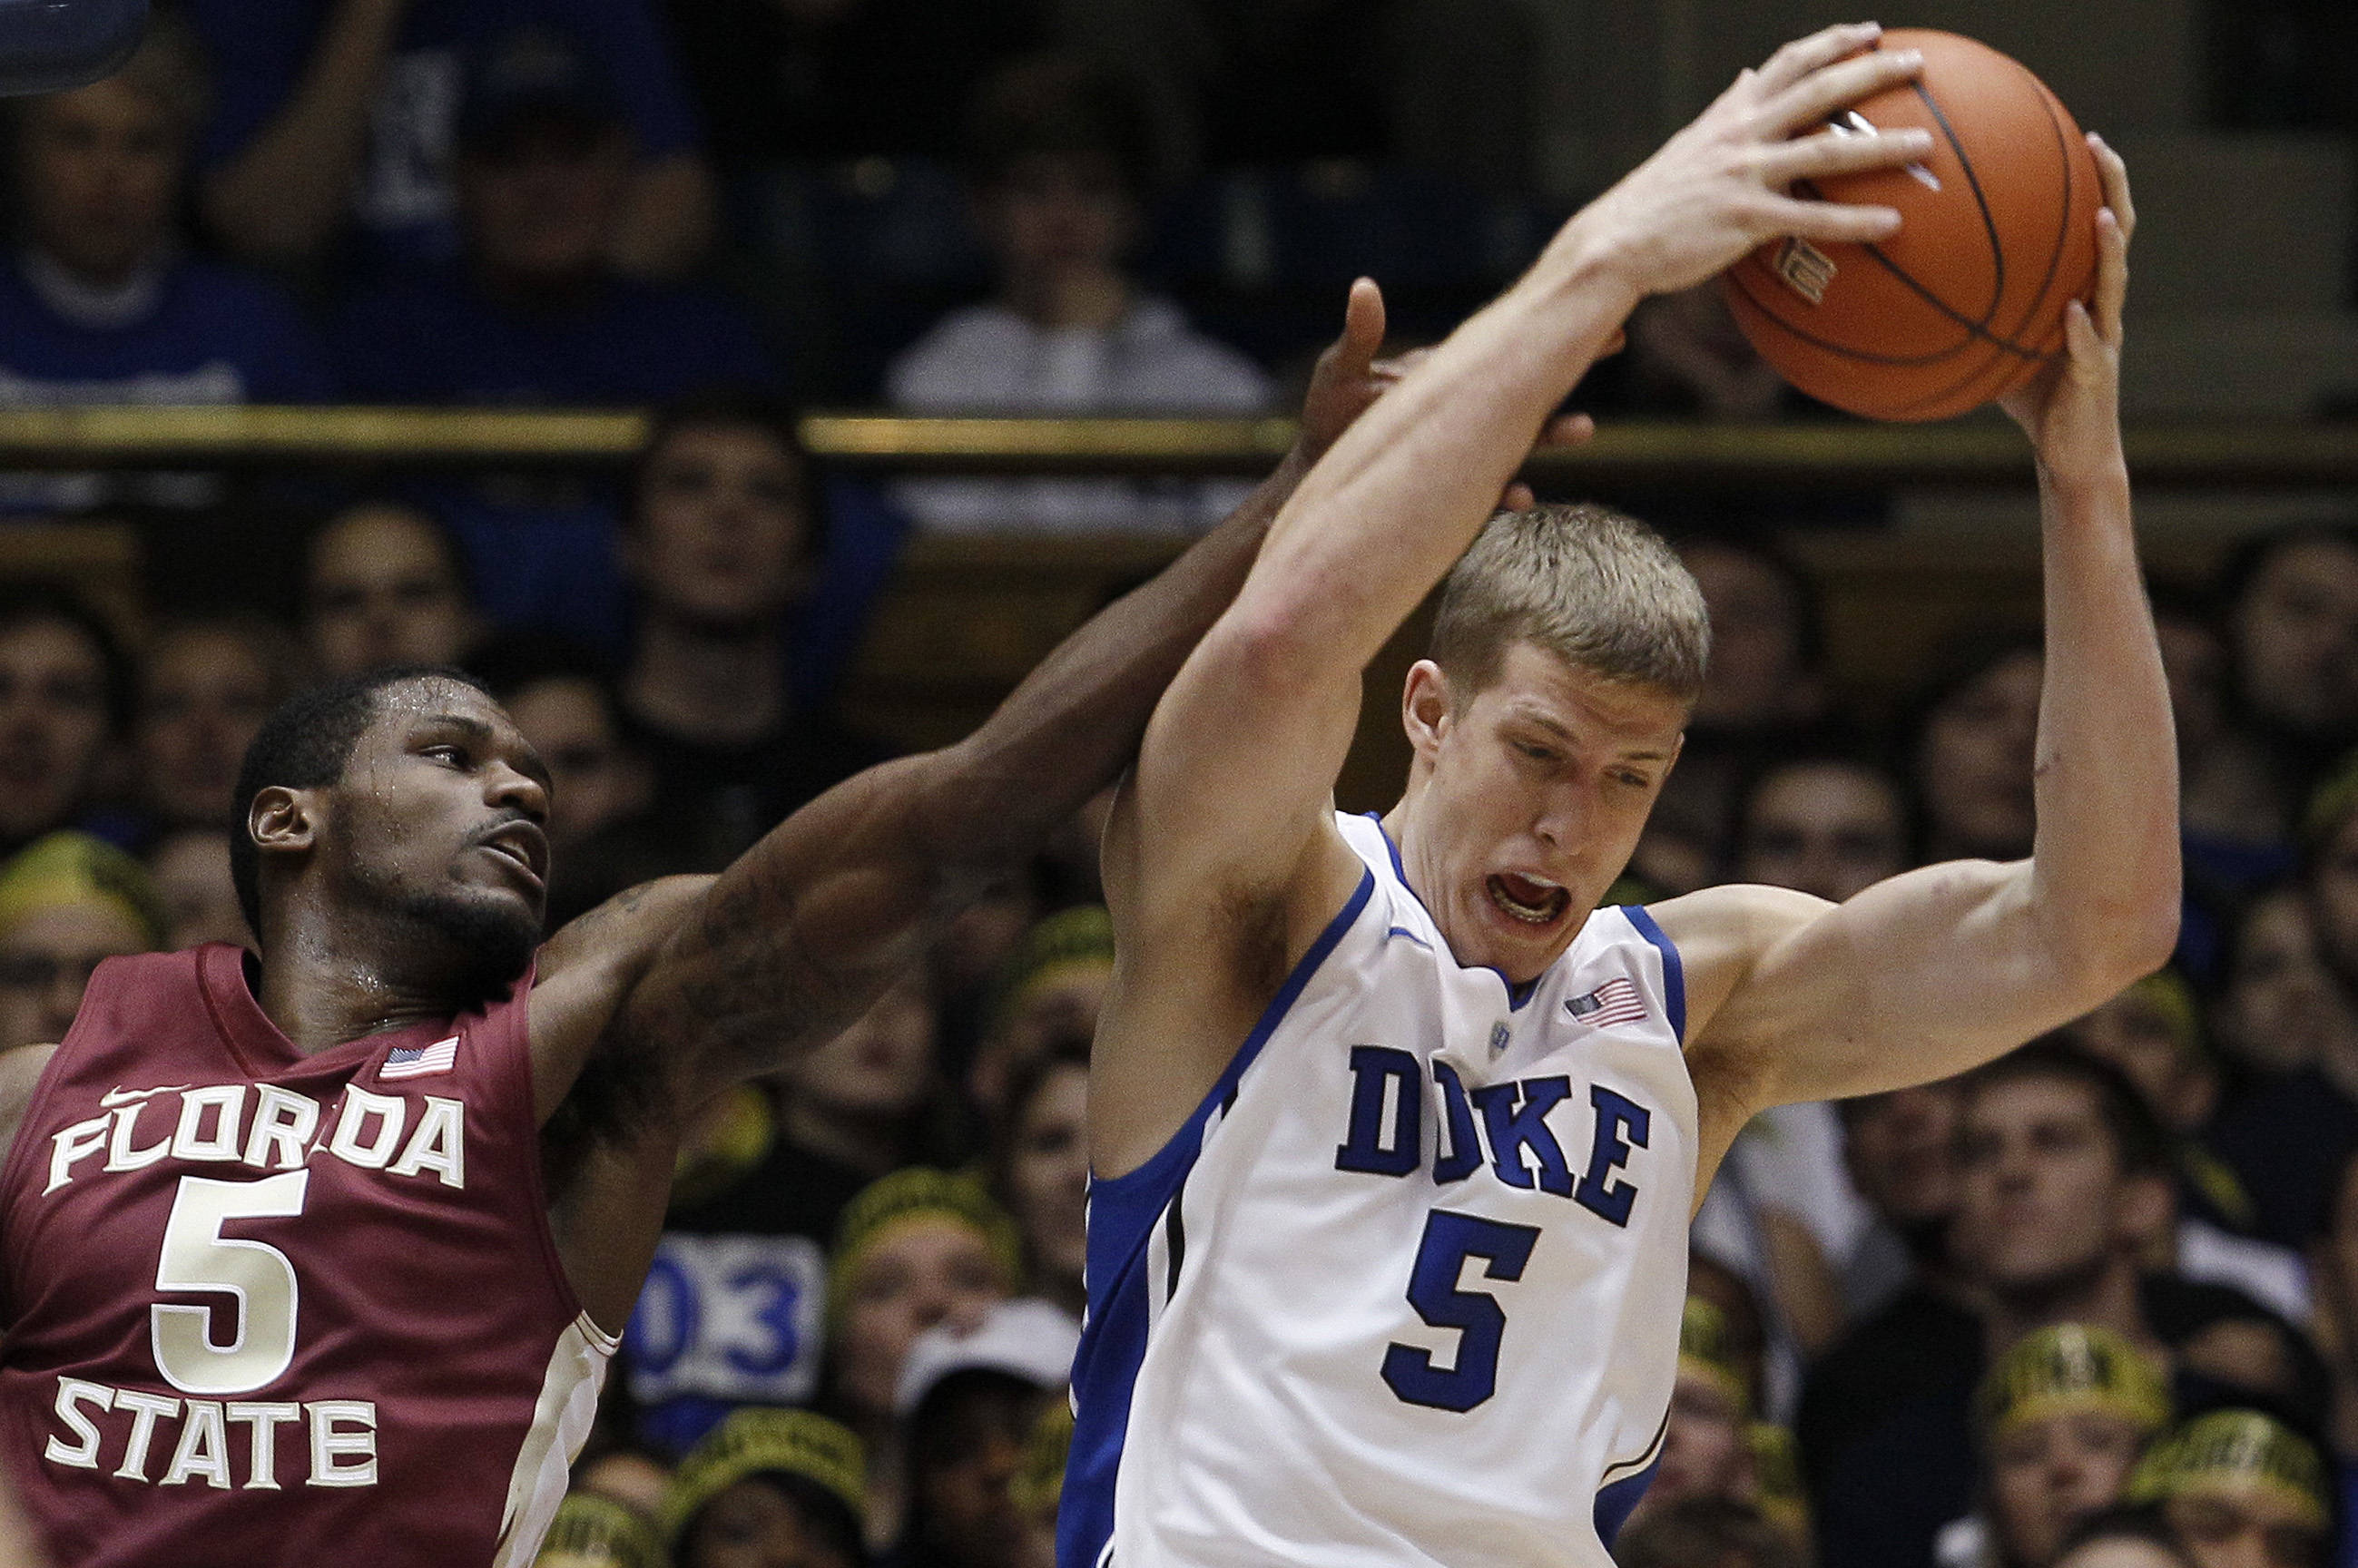 Florida State's Bernard James (5) and Duke's Mason Plumlee, right, struggle for a rebound during the first half. (AP Photo/Gerry Broome)